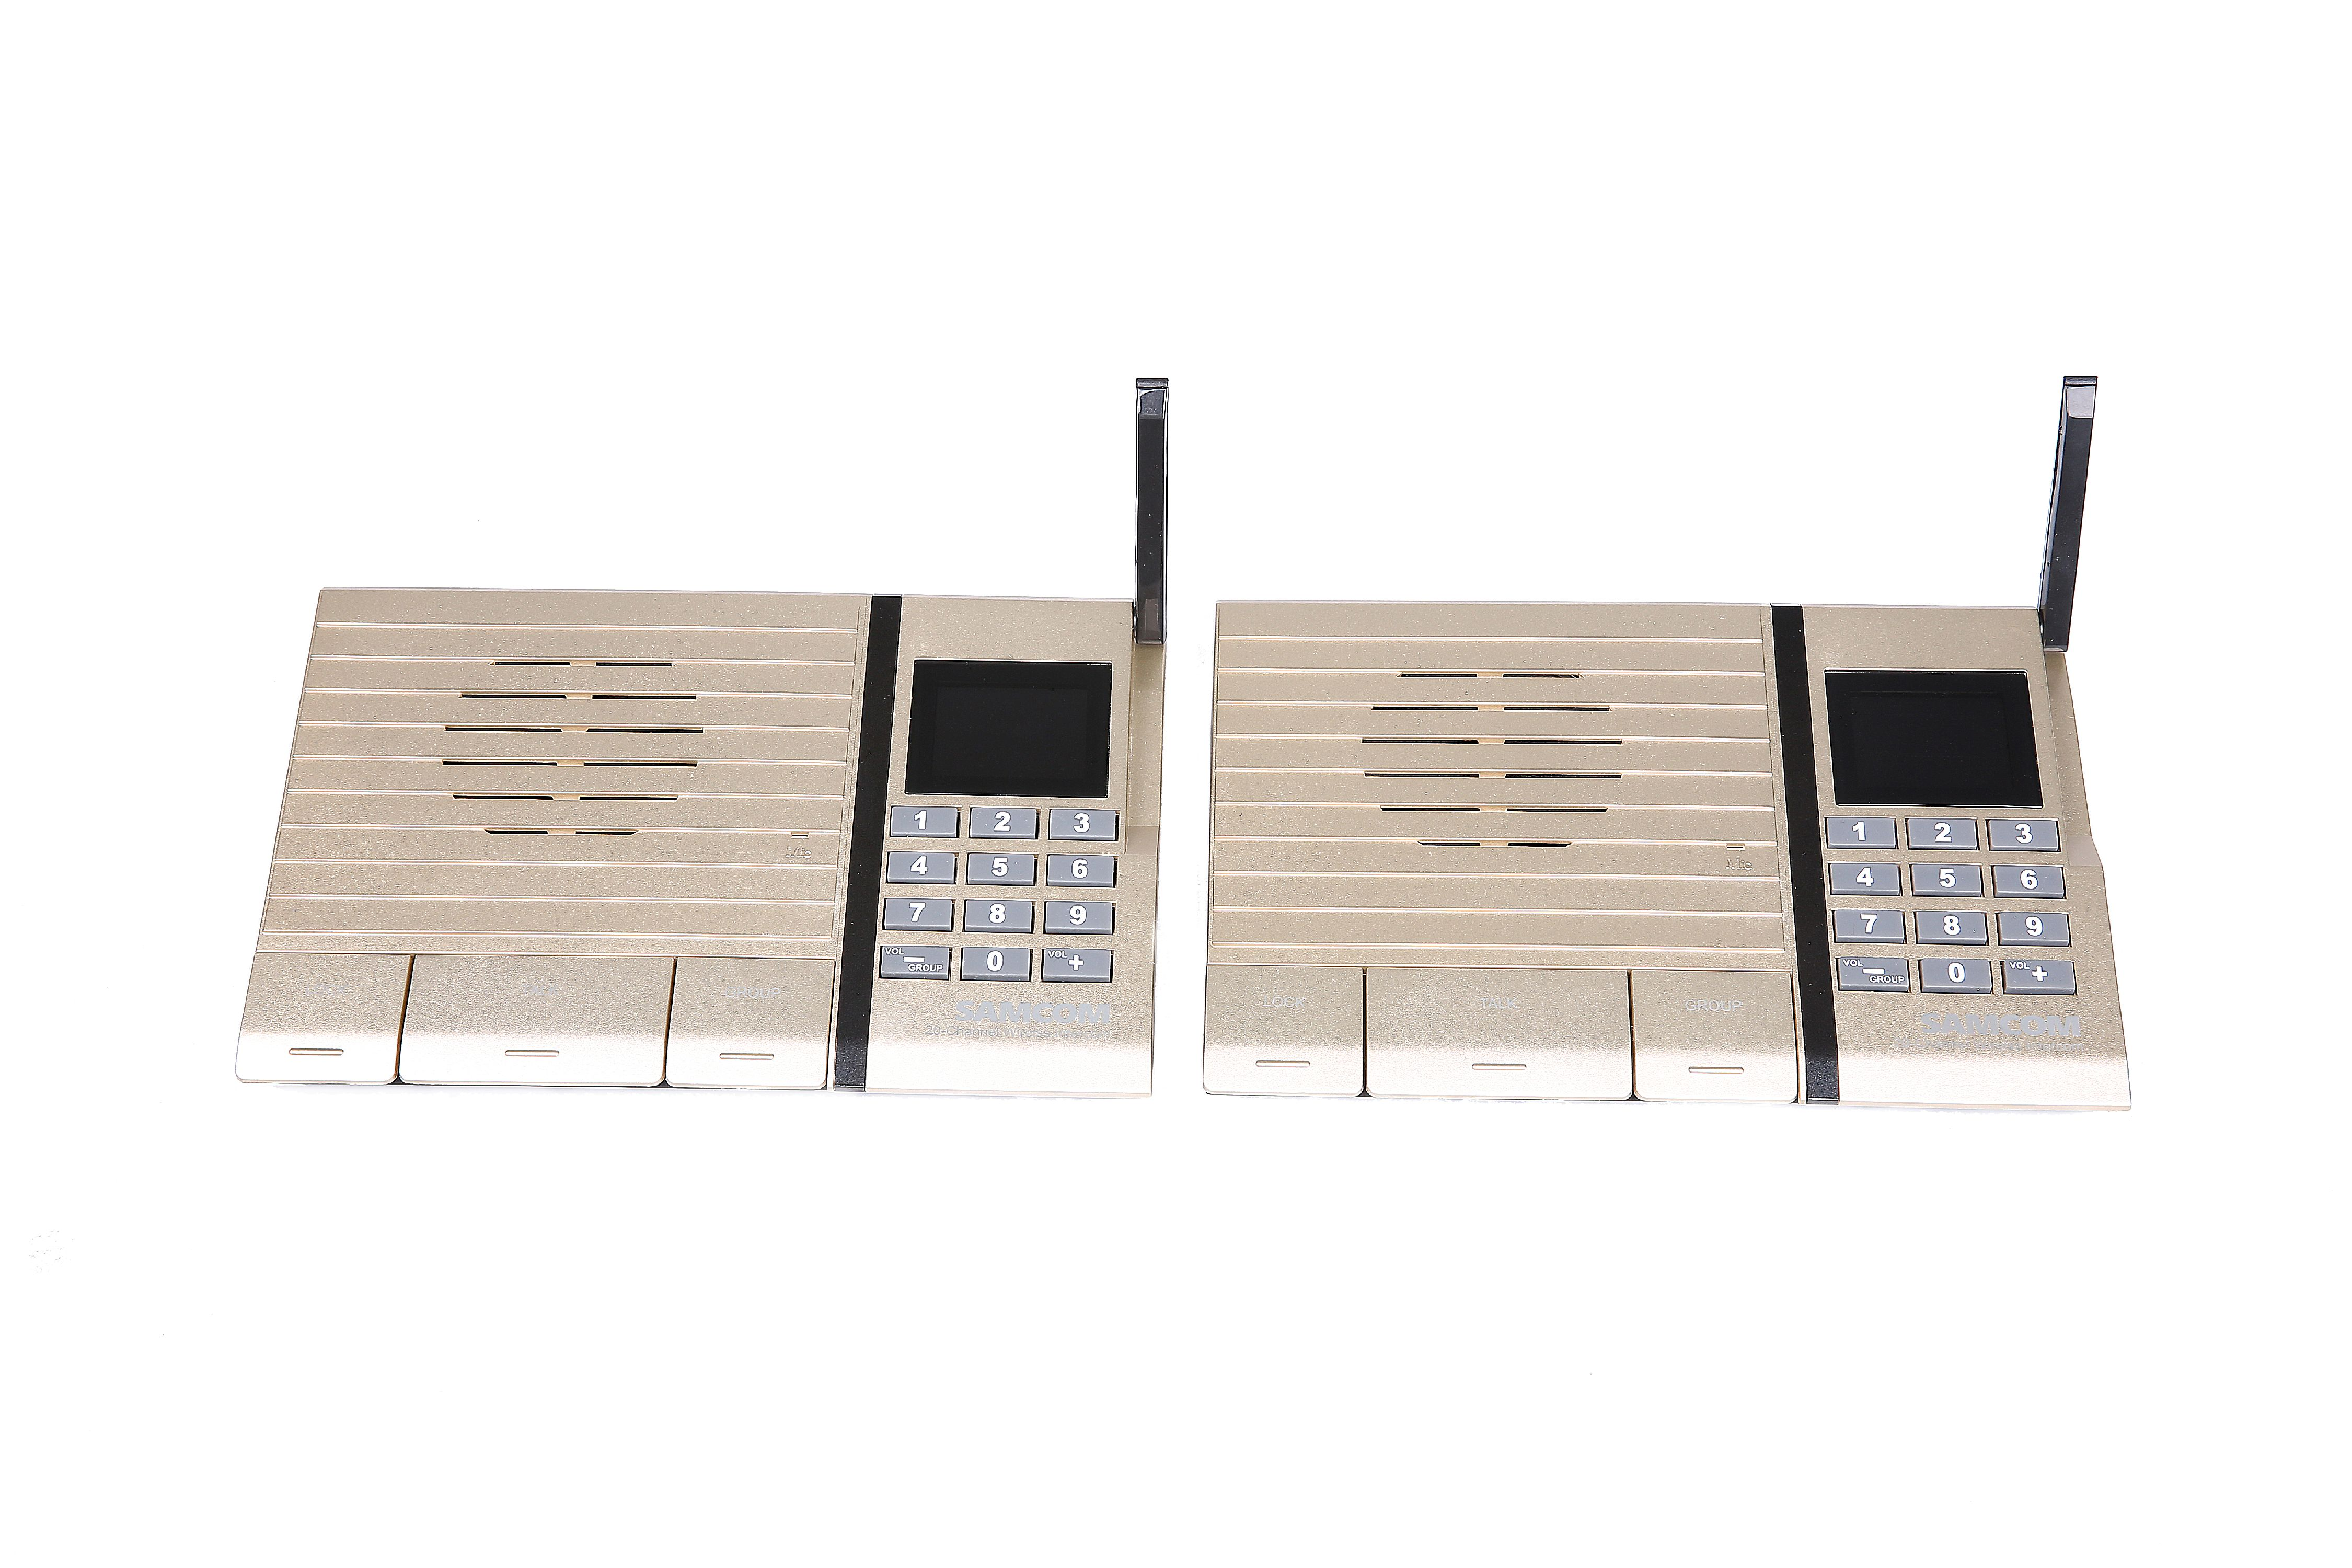 Wireless intercom system for home or office